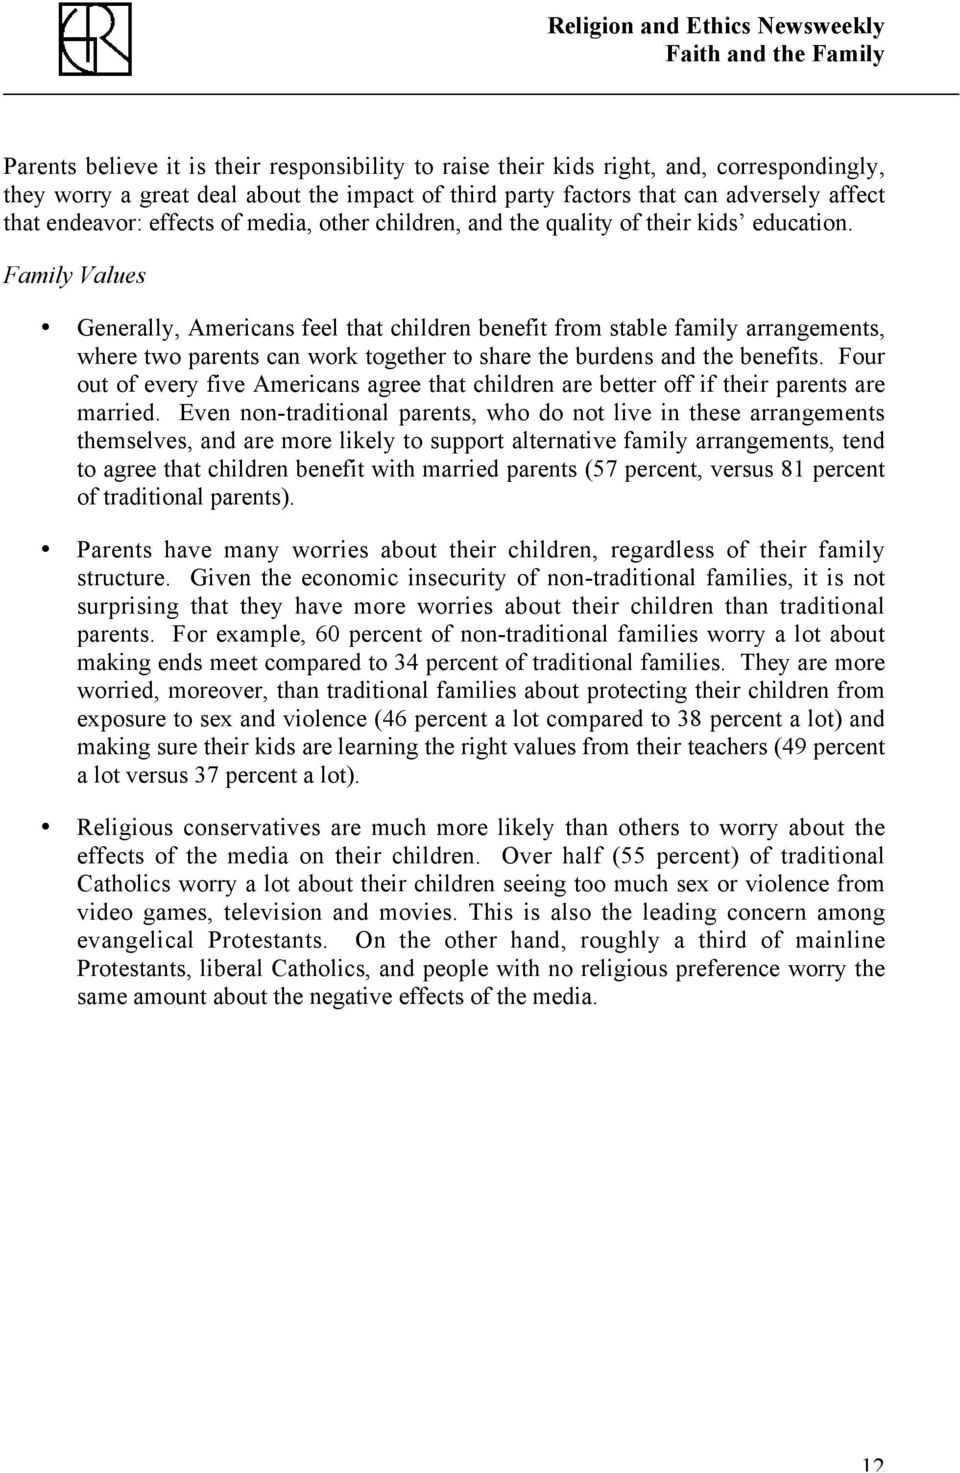 Family Values Generally, Americans feel that children benefit from stable family arrangements, where two parents can work together to share the burdens and the benefits.